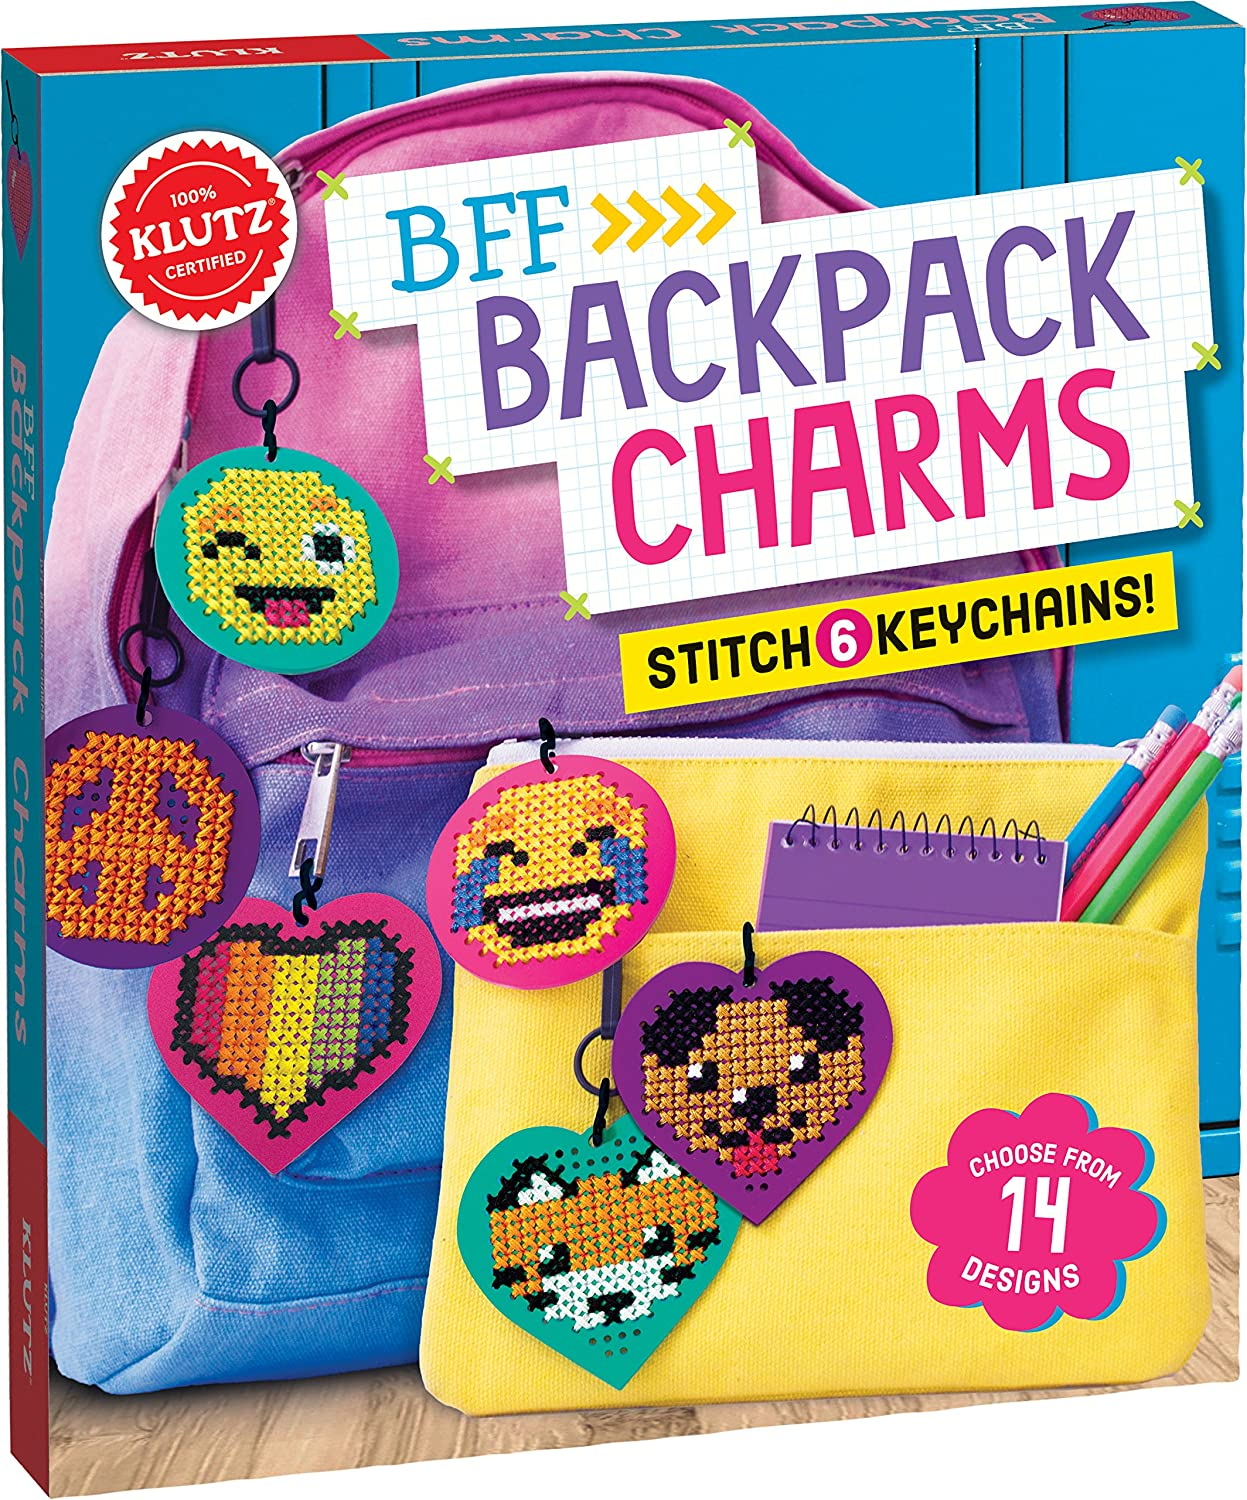 Klutz Bff Backpack Charms ONLY...